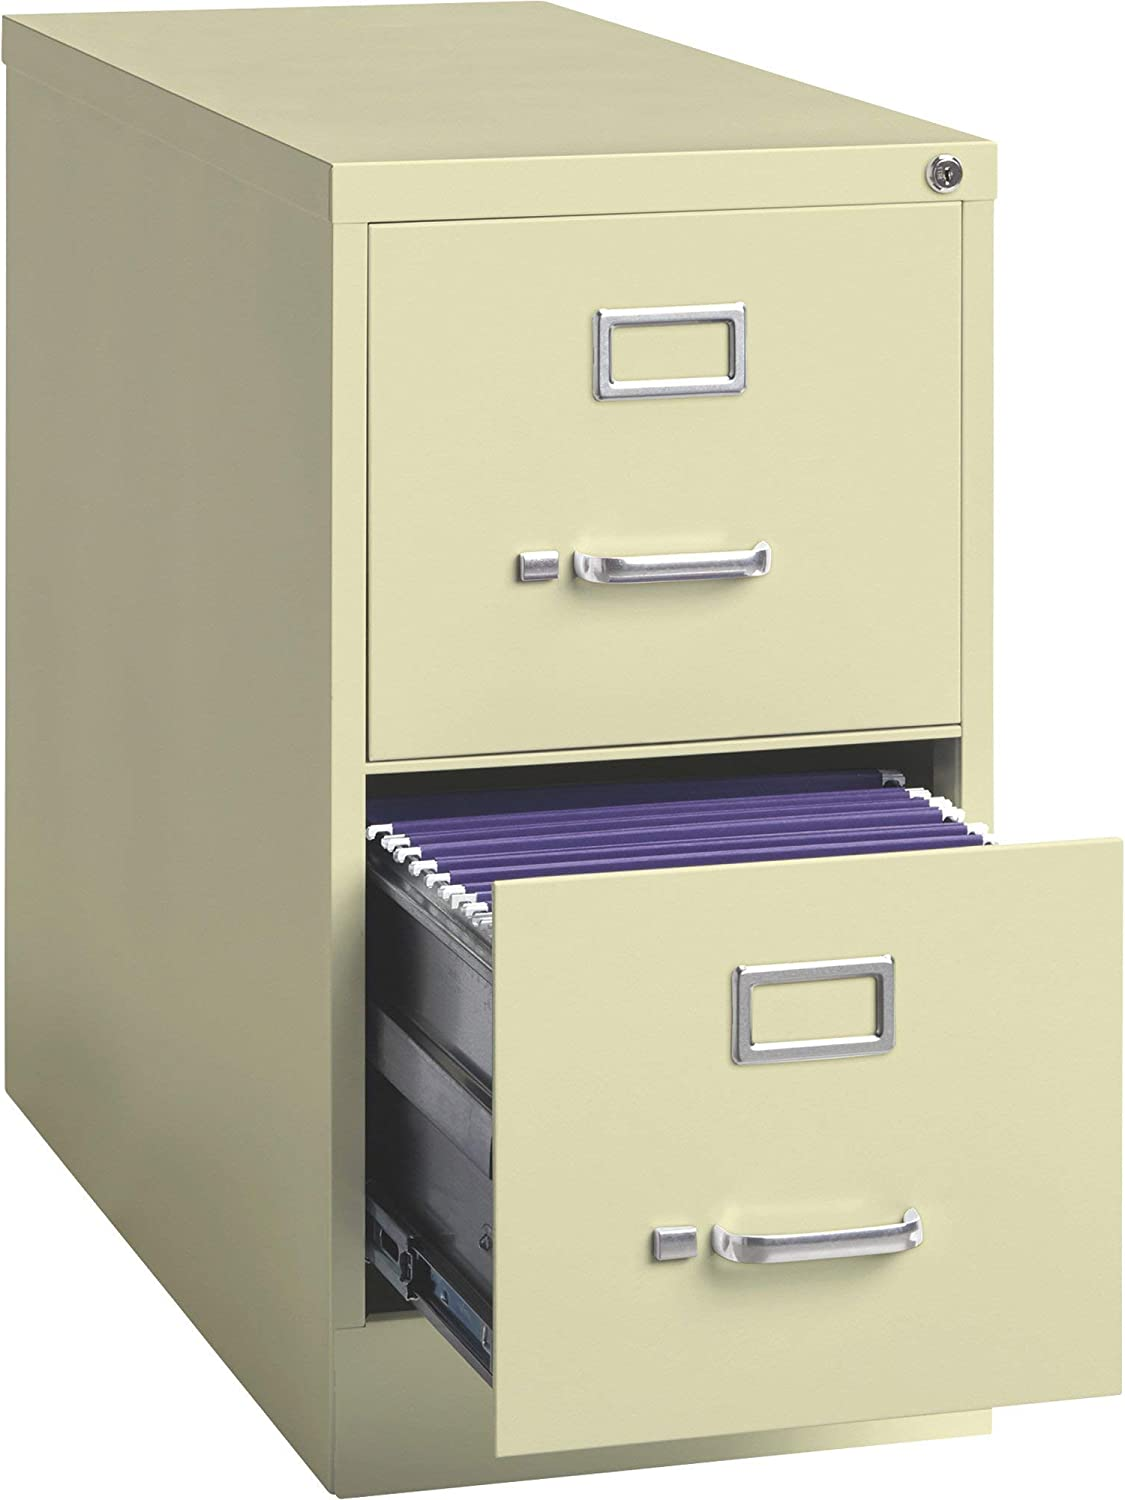 Hirsh Industries 2 Drawer Letter File Cabinet Putty 15in W X 26 5in D X 28 4in H Model Number 14415 Office Products Amazon Com